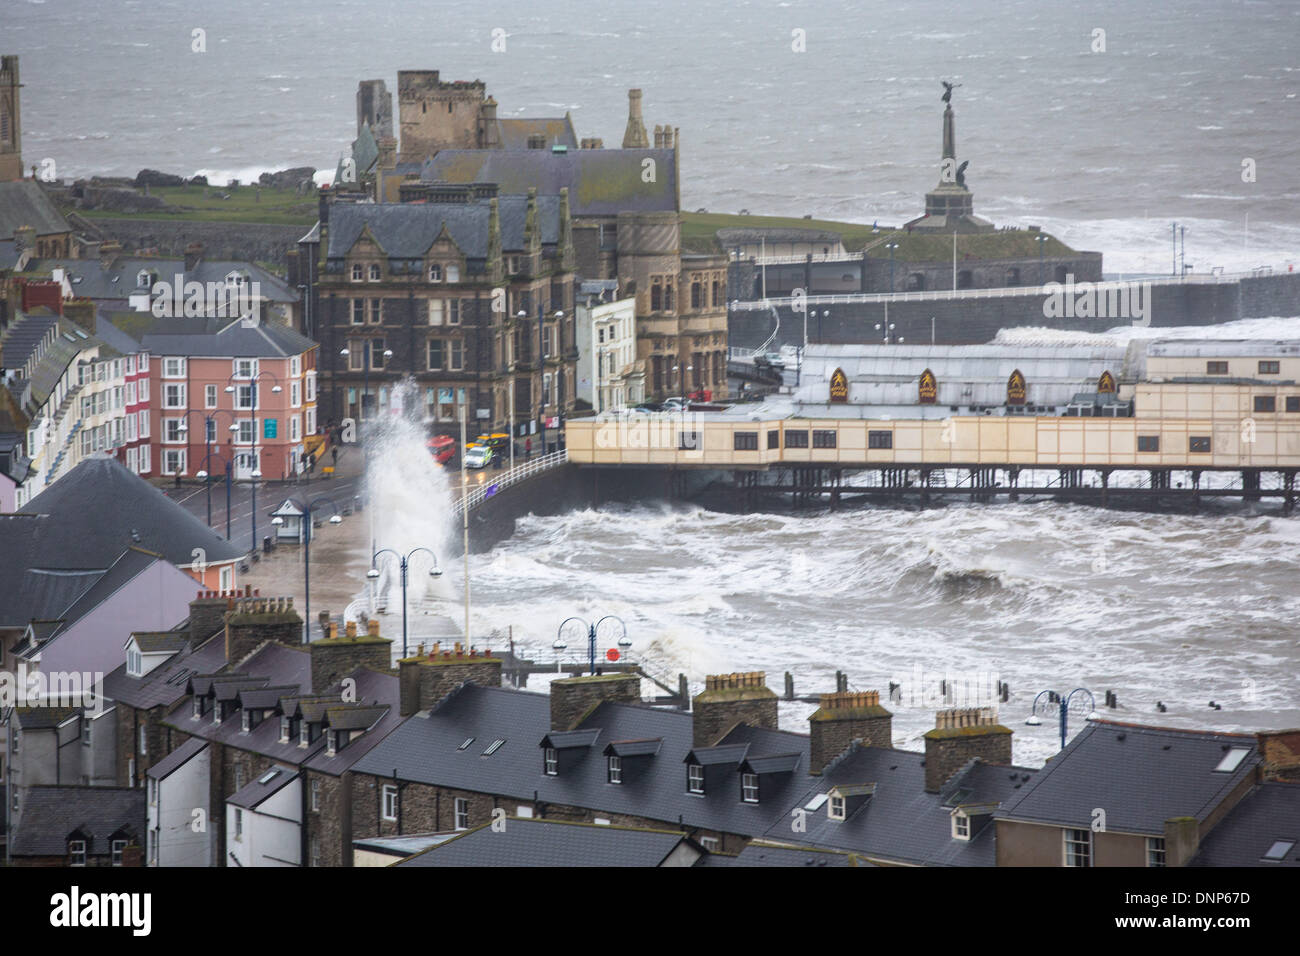 Aberystwyth, mid Wales, UK. 3 January 2014. Strong winds and a spring tide cause waves to batter the west Wales coast. The promenade at Aberystwyth was closed to the public as waves tore over the sea wall, breaking sea defences and spreading debris over a wide area. Police and coastguards cordoned-off the north and south promenades at high tide, and a fire engine became stranded. Credit:  atgof.co/Alamy Live News - Stock Image